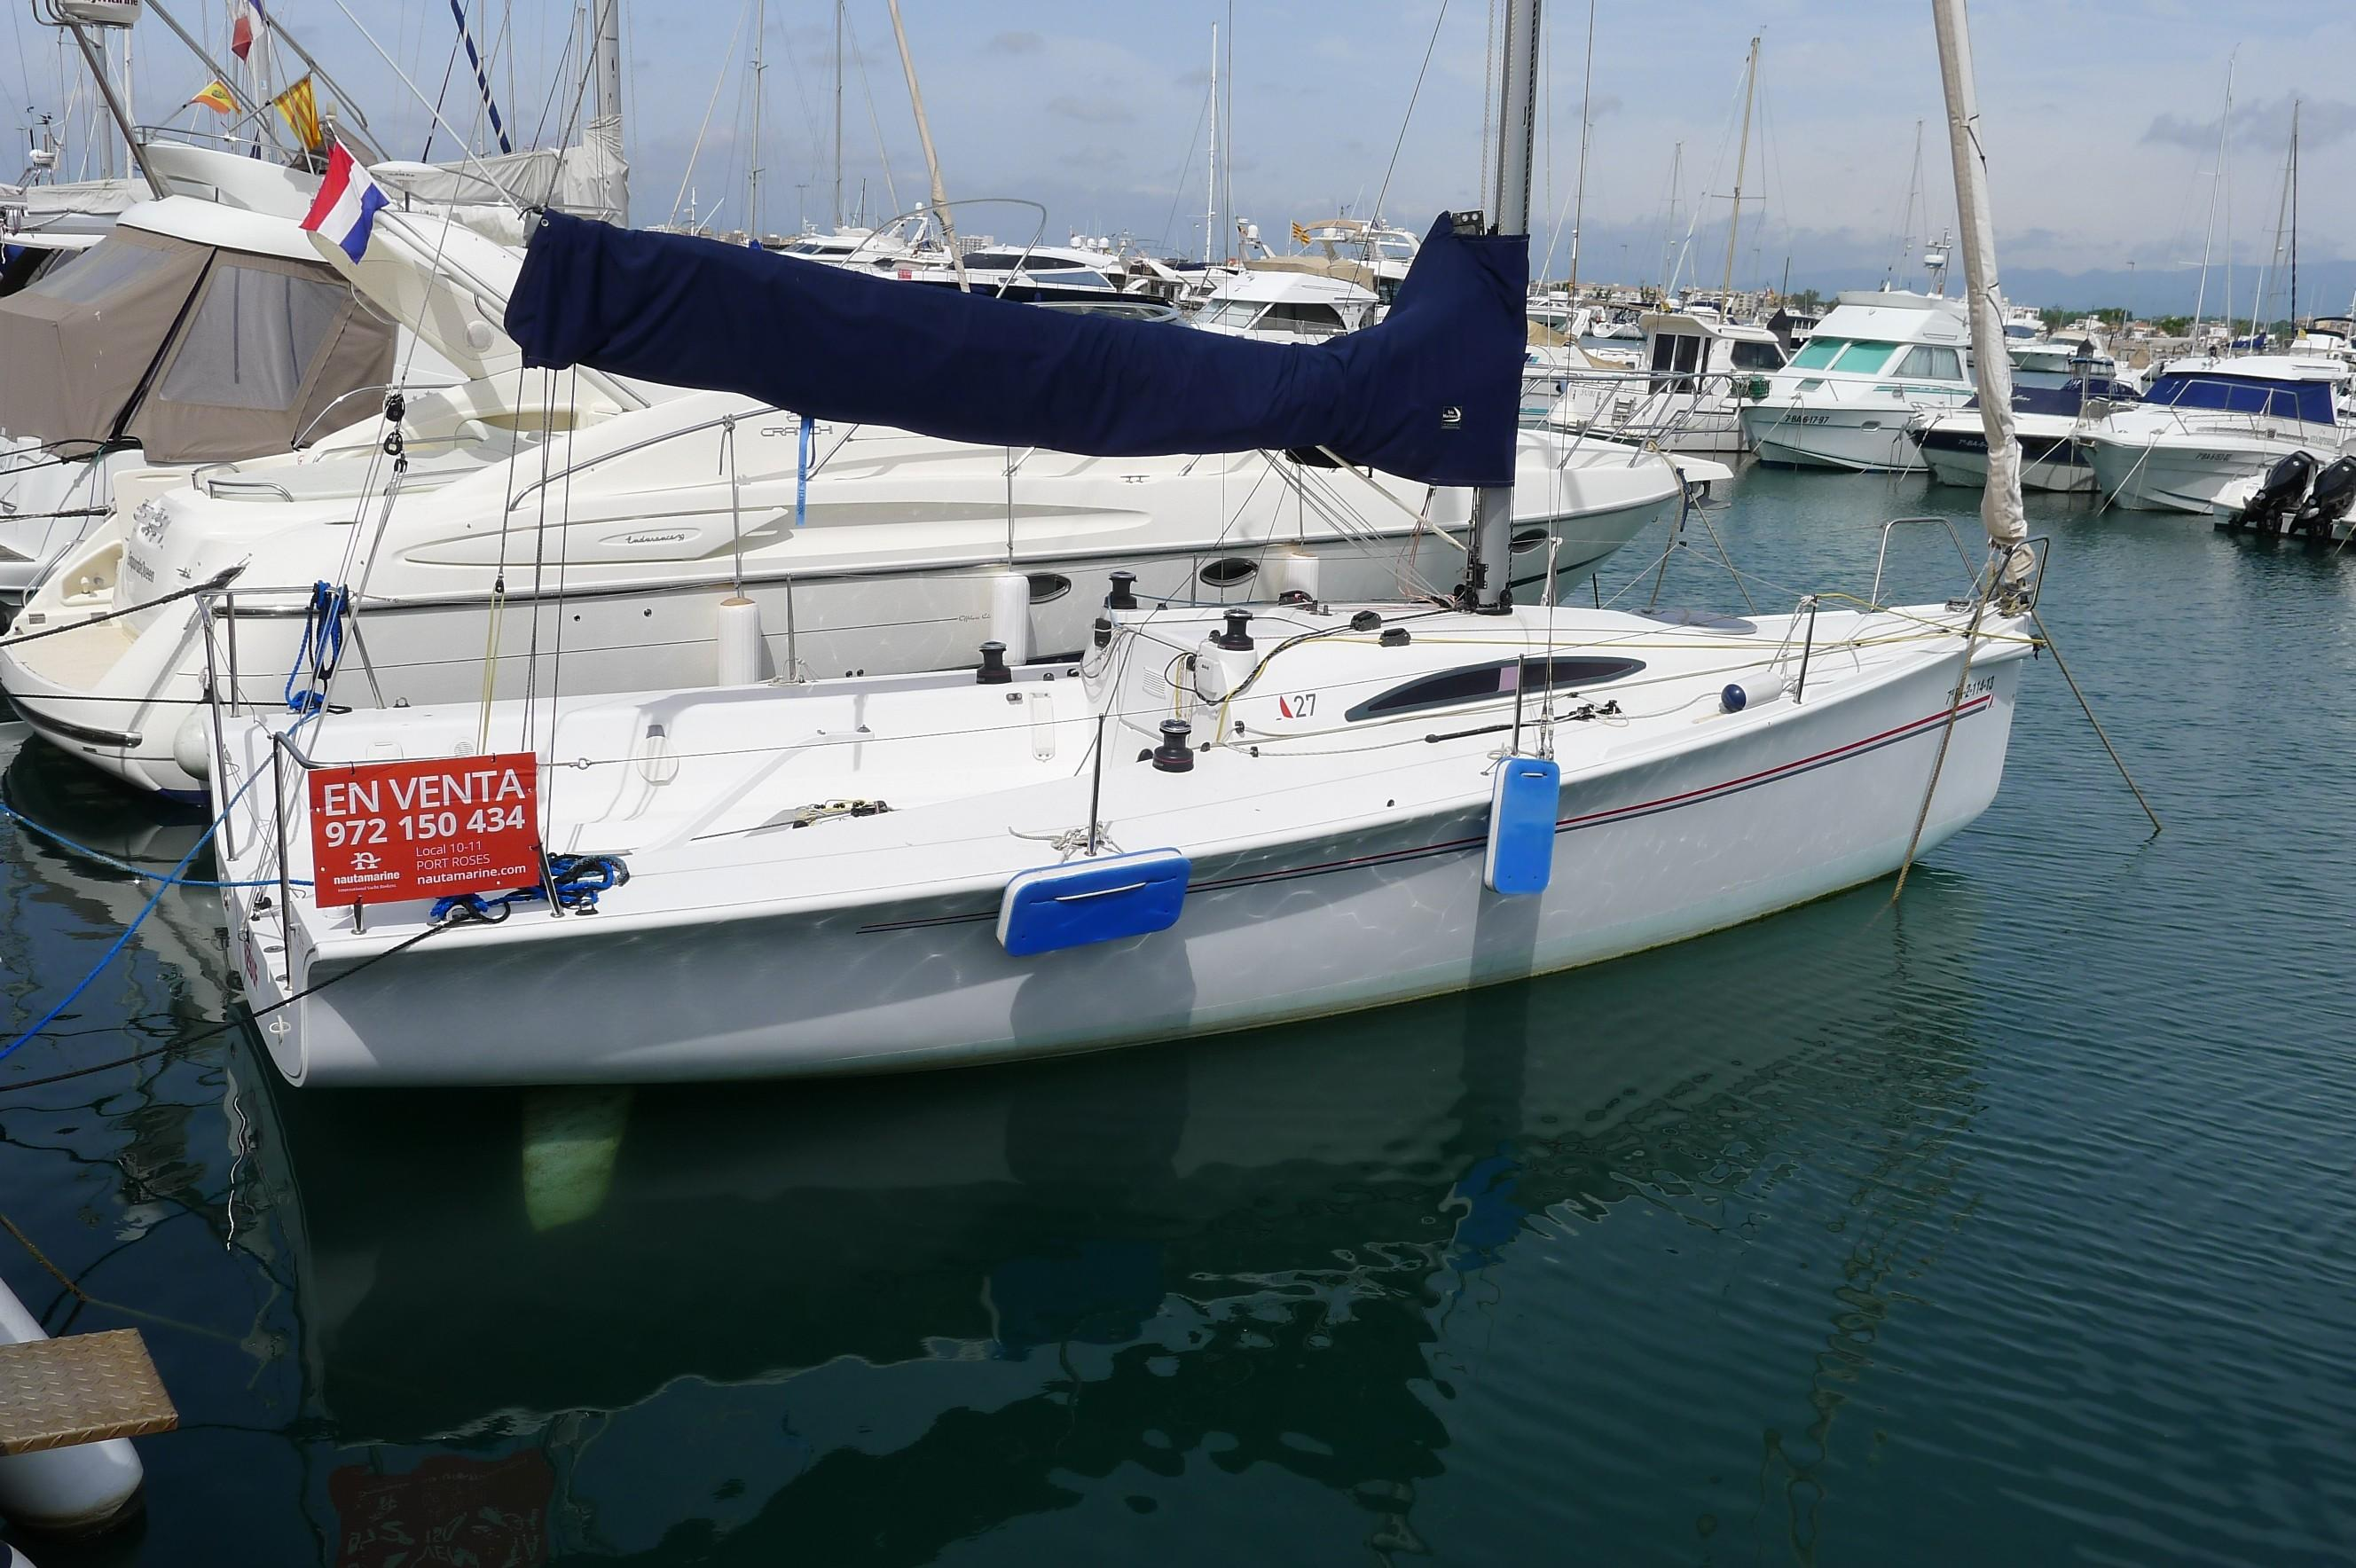 Archambault A27- lifting keel